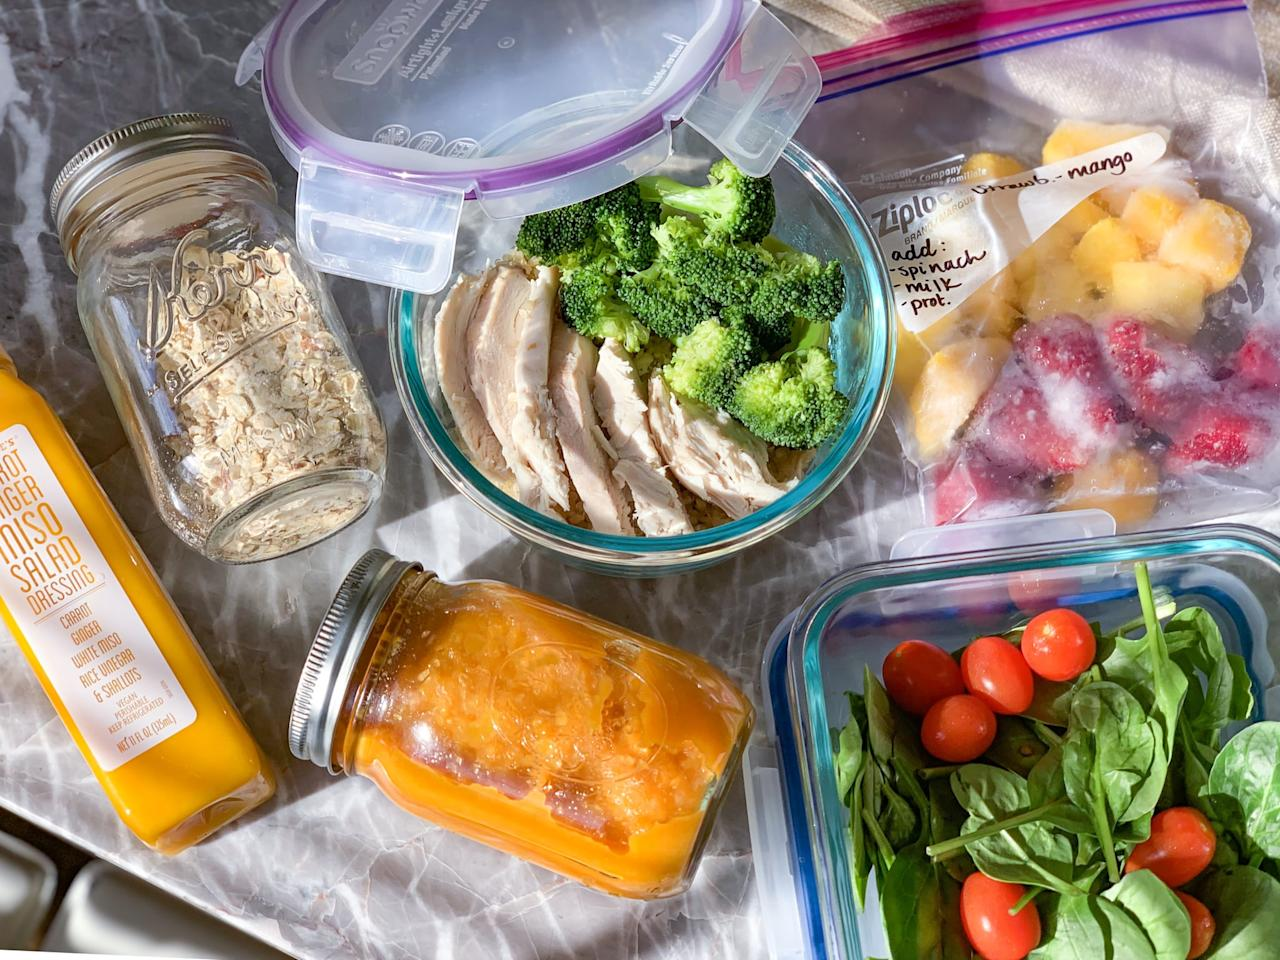 """<p>I think one of the pitfalls for new meal-preppers is monotony; if you're forced to eat the same food for every single meal, you're bound to divert from your plan. <a href=""""https://www.popsugar.com/fitness/Healthy-Meal-Prep-Ideas-44074194"""" class=""""ga-track"""" data-ga-category=""""Related"""" data-ga-label=""""https://www.popsugar.com/fitness/Healthy-Meal-Prep-Ideas-44074194"""" data-ga-action=""""In-Line Links"""">Keep things fresh and interesting</a> with a balanced menu, while still keeping it simple - you don't want to have to make 15 different recipes for a five-day week, right?</p> <p>Here's what my sample week looks like:</p> <ul> <li> <strong>Breakfasts:</strong> Three smoothies, two overnight oats</li> <li> <strong>Lunches:</strong> Three salads, two protein bowls</li> <li> <strong>Dinners:</strong> Three protein bowls, two soups</li> </ul> <p>You can mix these up throughout the week and alternate. (In other words, you could have smoothies for breakfast on Monday, Wednesday, and Friday and overnight oats on Tuesday and Thursday. The same is true for salads, bowls, and soups.) The bases will be similar and easy to prepare, but you can dress them up in different ways. </p> <p>For example, <a href=""""https://www.popsugar.com/fitness/Overnight-Oats-Recipes-40240933"""" class=""""ga-track"""" data-ga-category=""""Related"""" data-ga-label=""""https://www.popsugar.com/fitness/Overnight-Oats-Recipes-40240933"""" data-ga-action=""""In-Line Links"""">preparing overnight oats</a> comes down to having oats, chia, and plant milk - or regular milk, whatever works - but you can mix in different spices and toppings to incorporate more variety. With salads, you can spice things up with different dressings and toppings, but you'll still portion out the same leafy green base.</p>"""